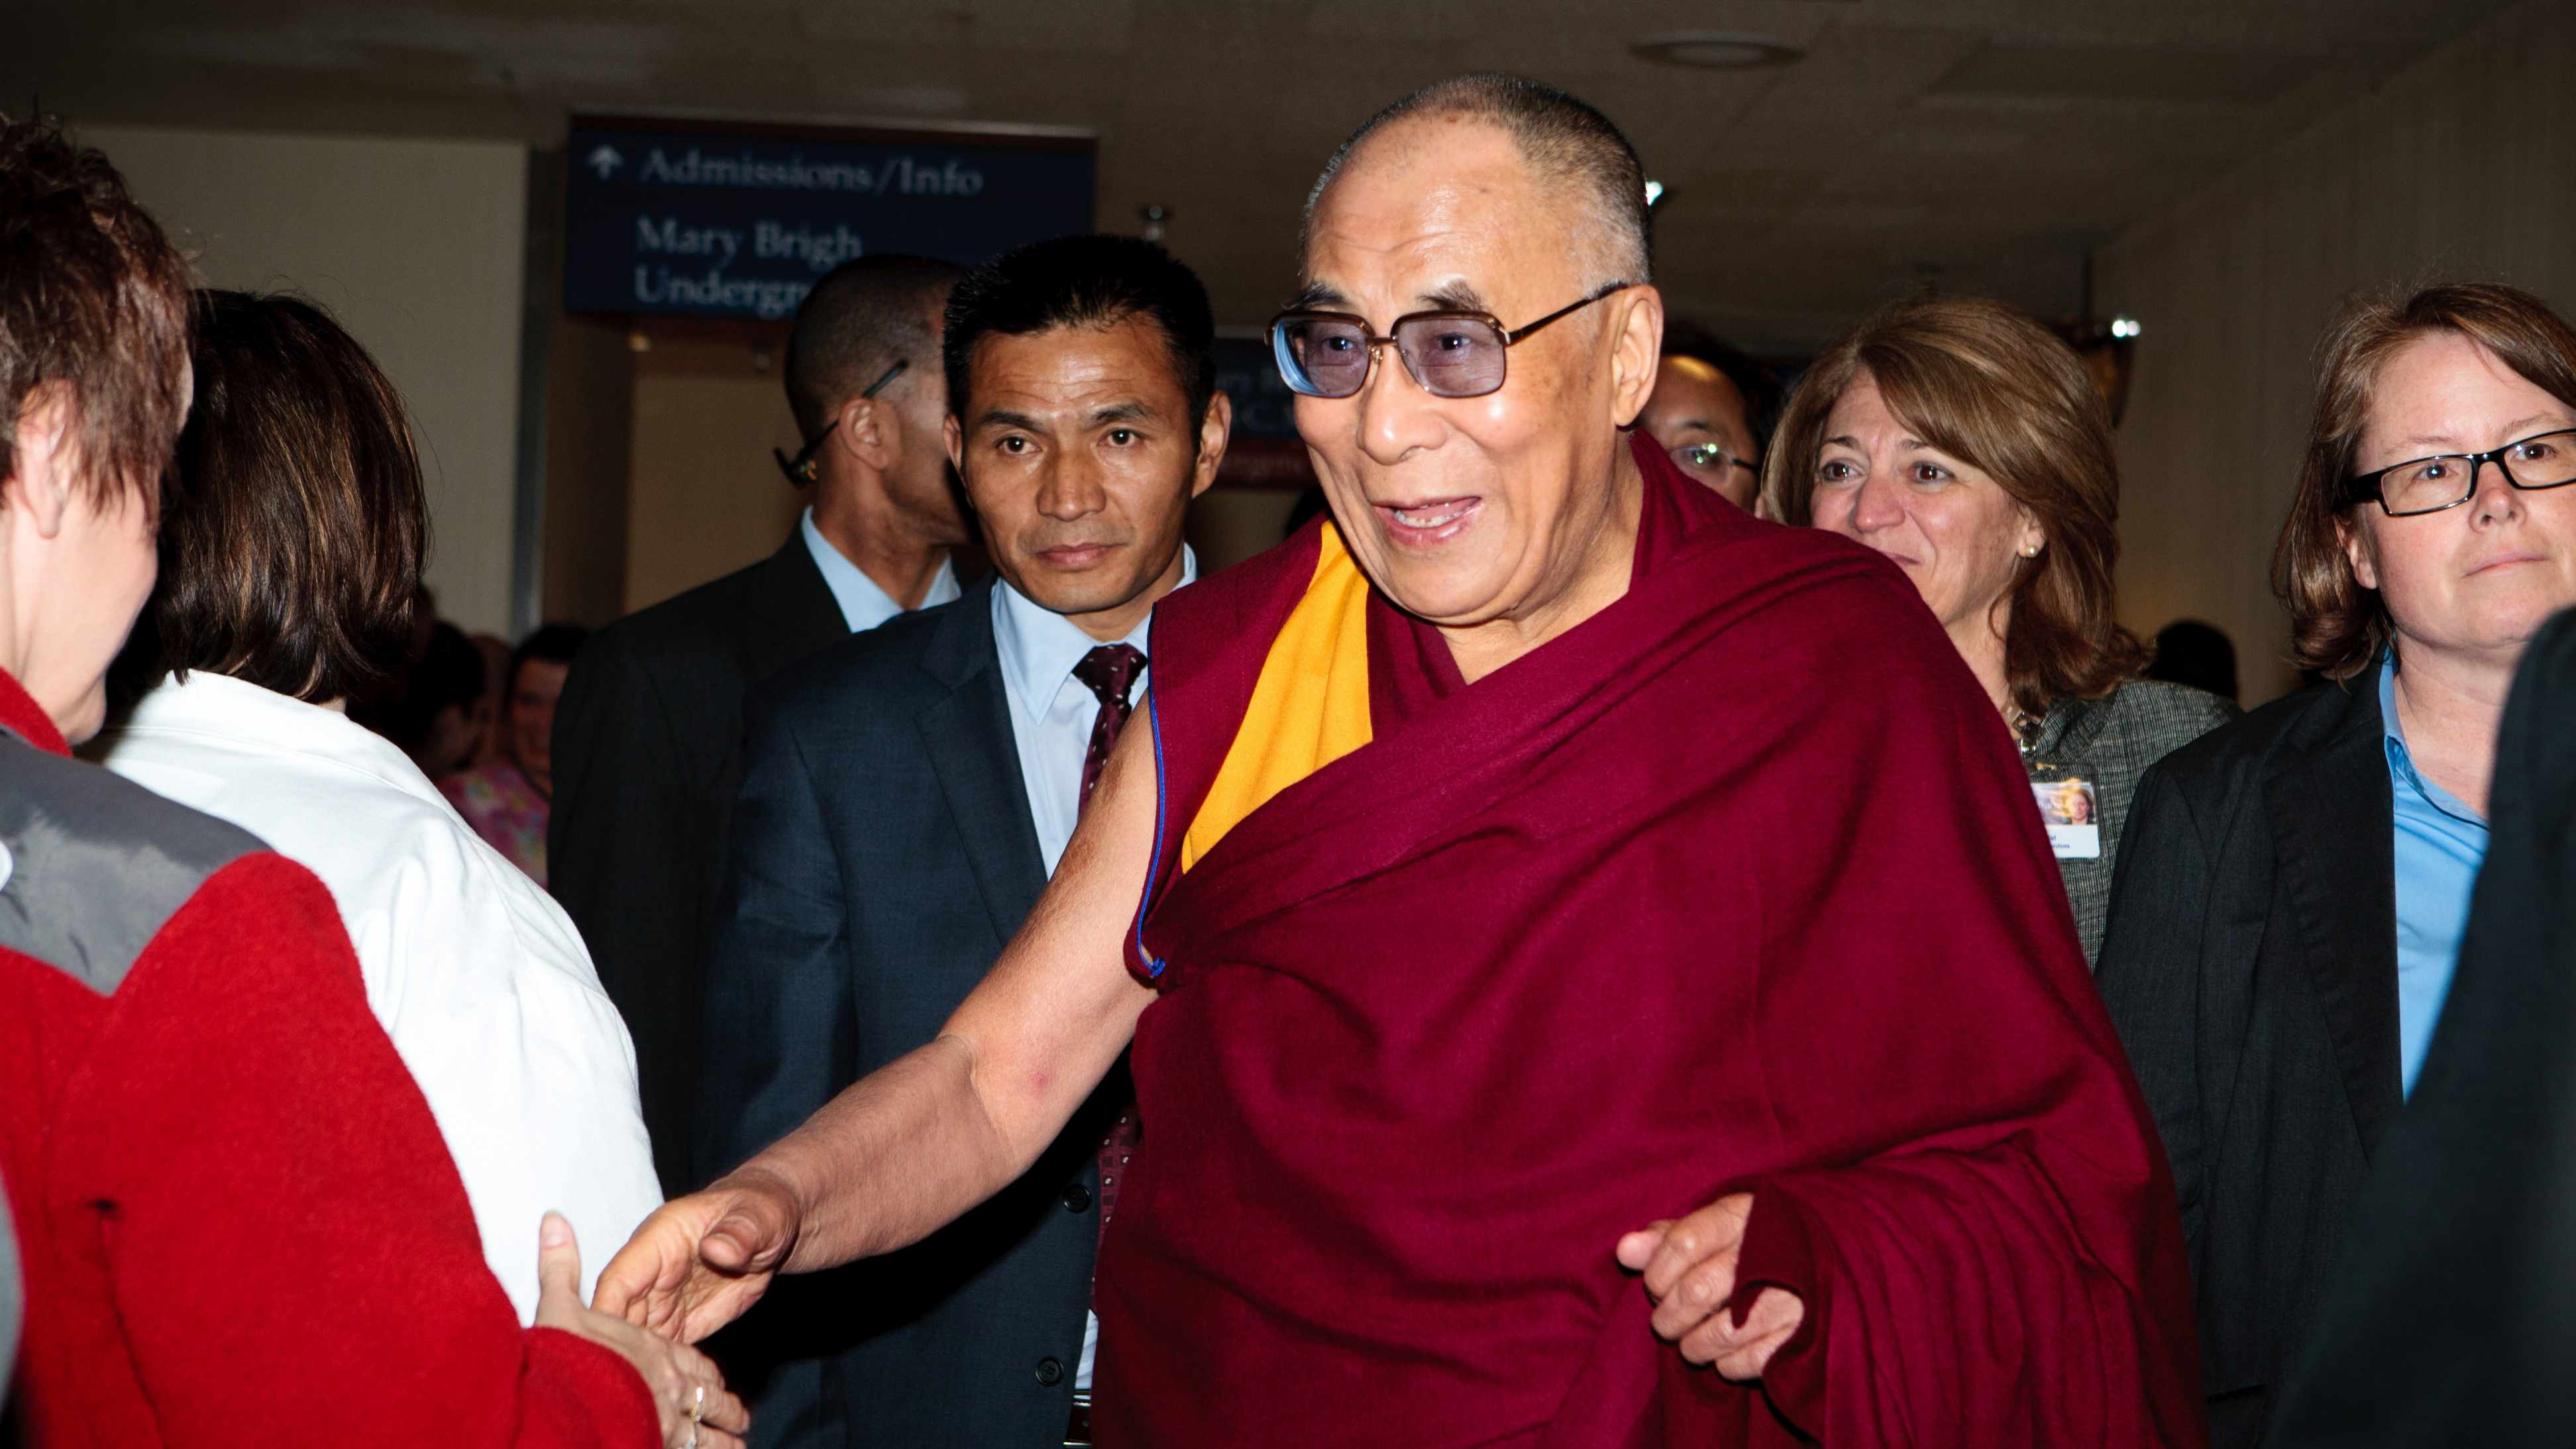 His Holiness the Dalai Lama to Give Special Presentation at